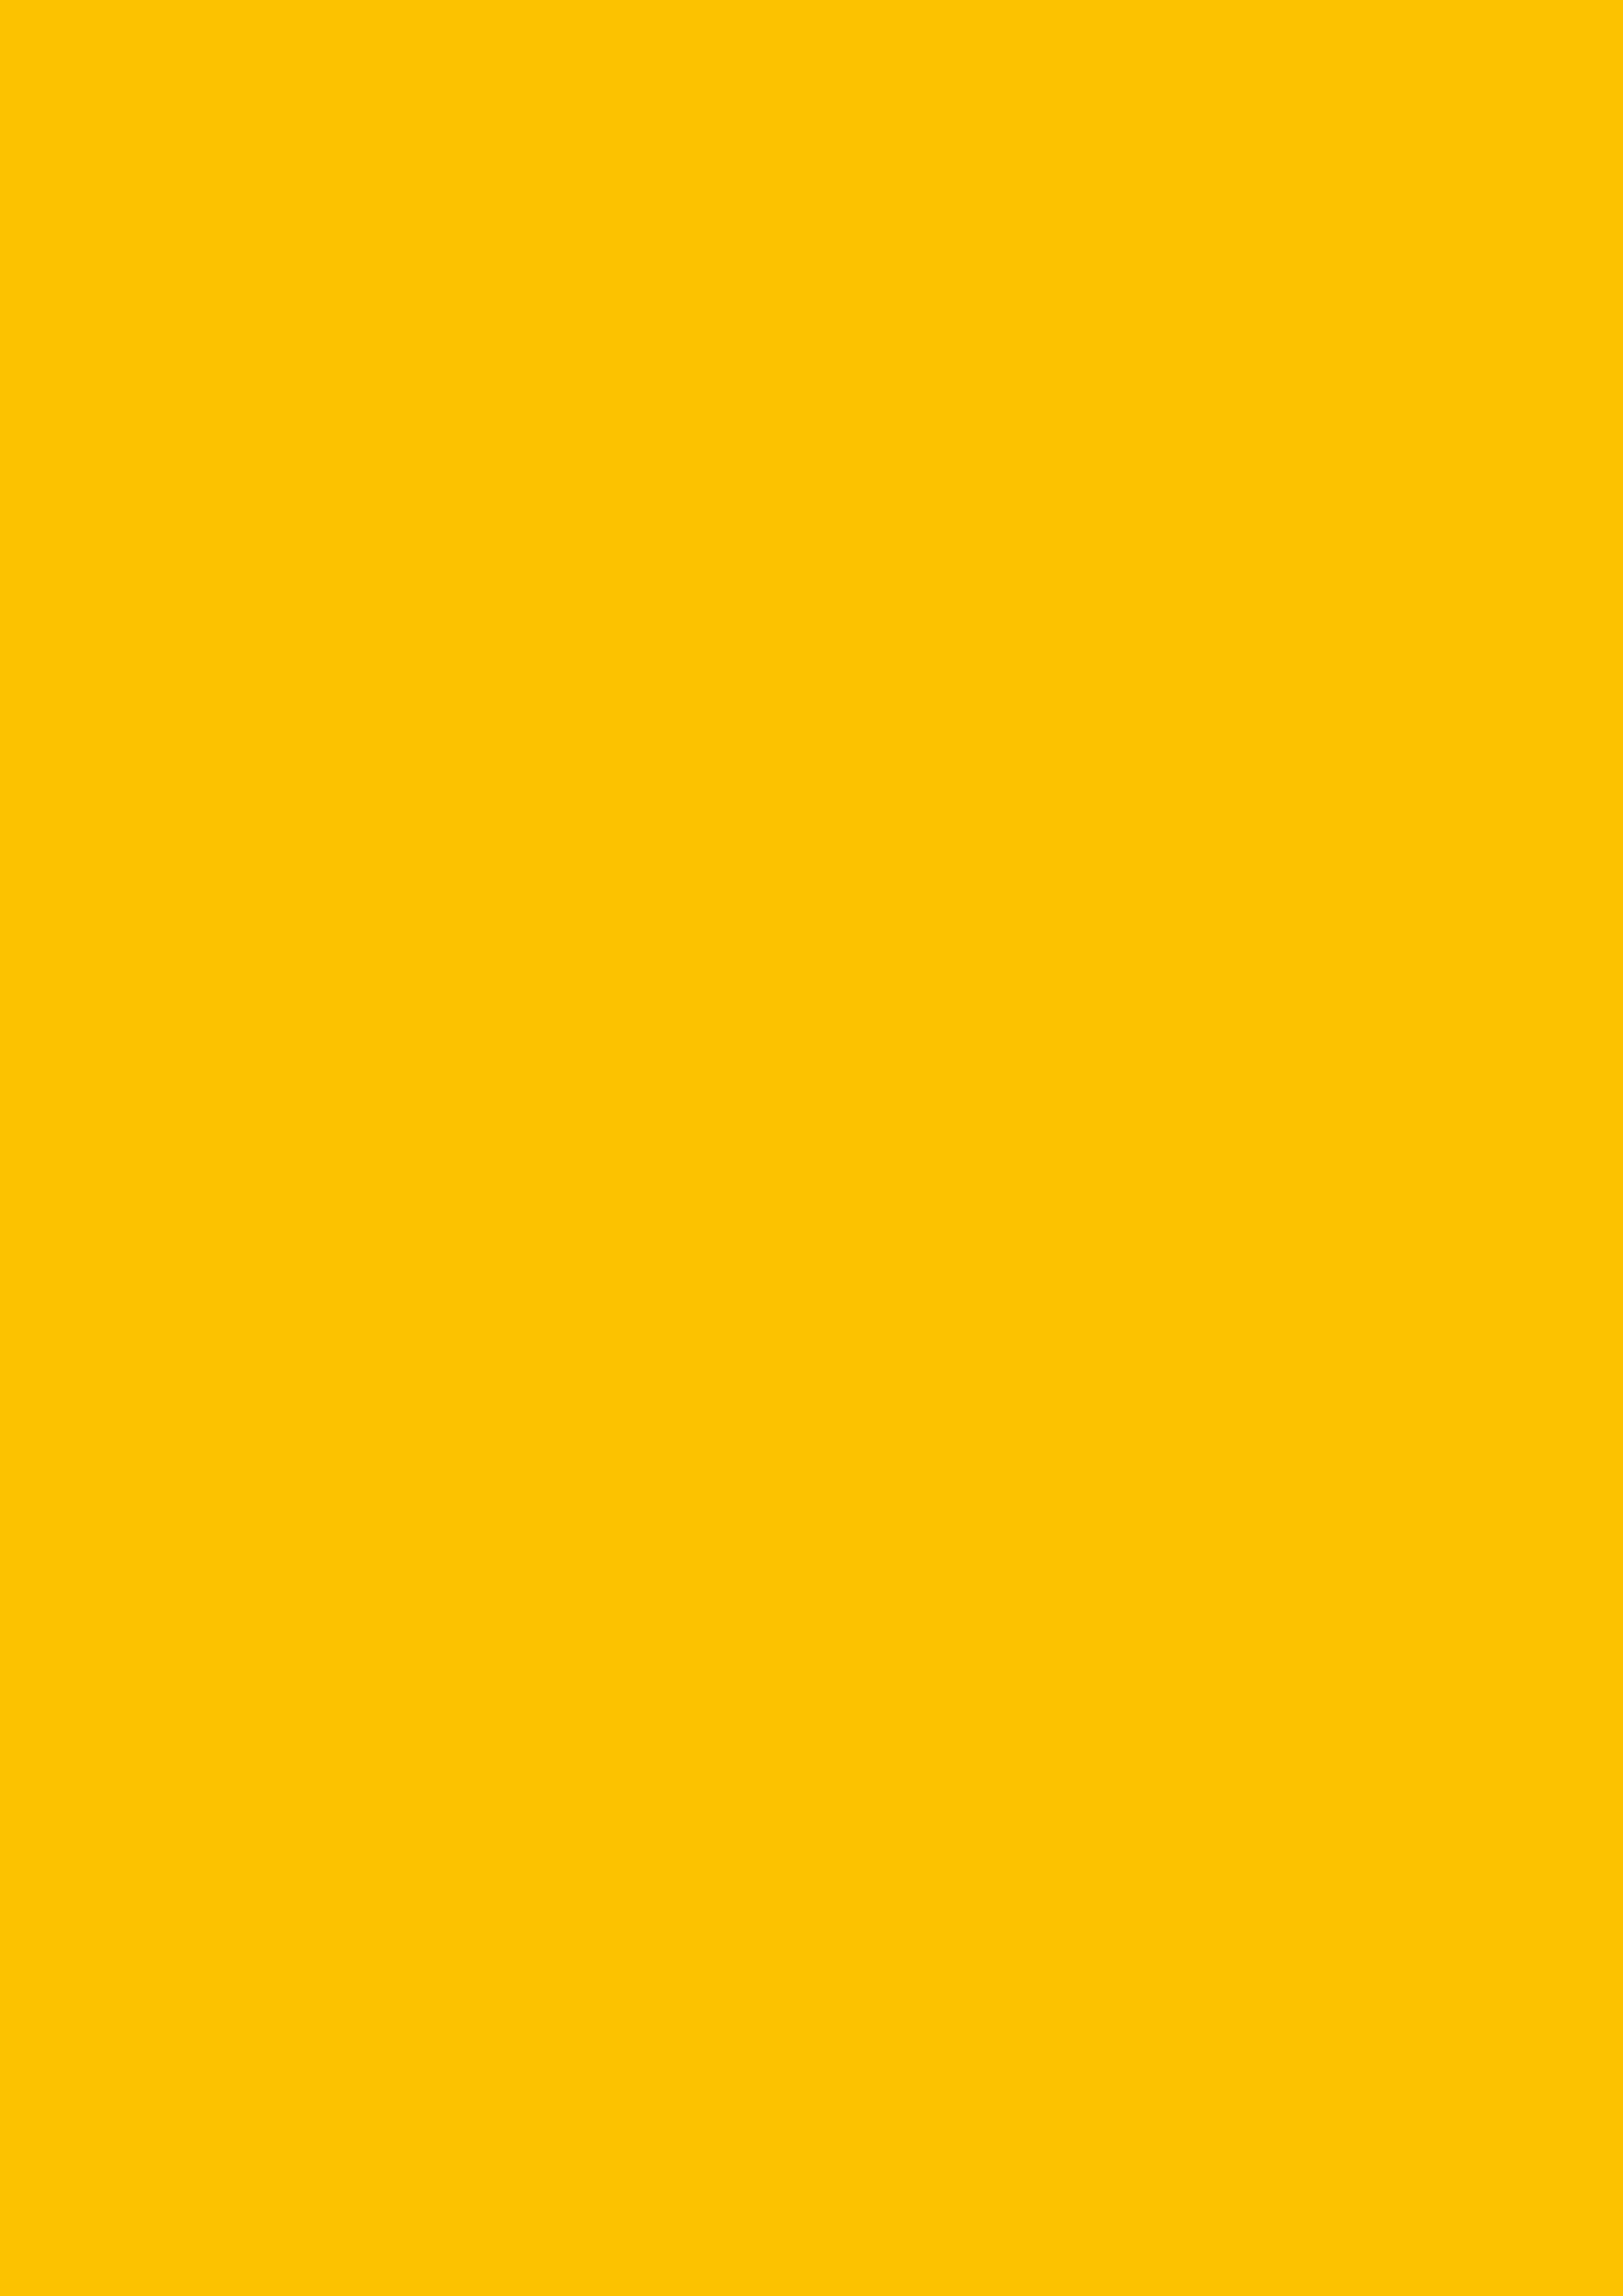 2480x3508 Golden Poppy Solid Color Background